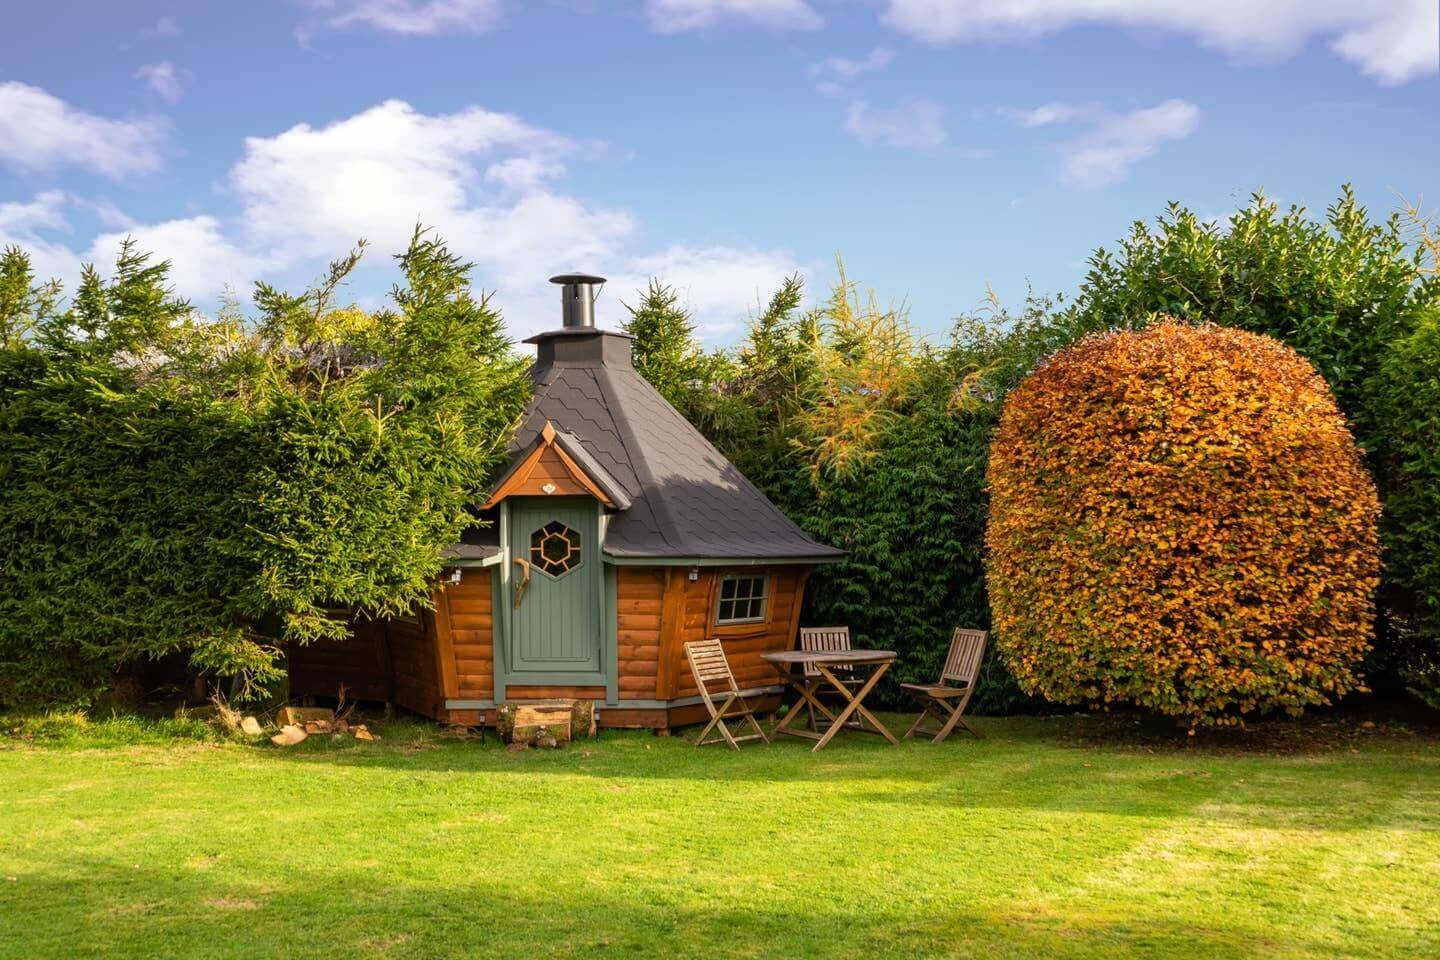 A bucket list of magical Airbnb stays in the UK